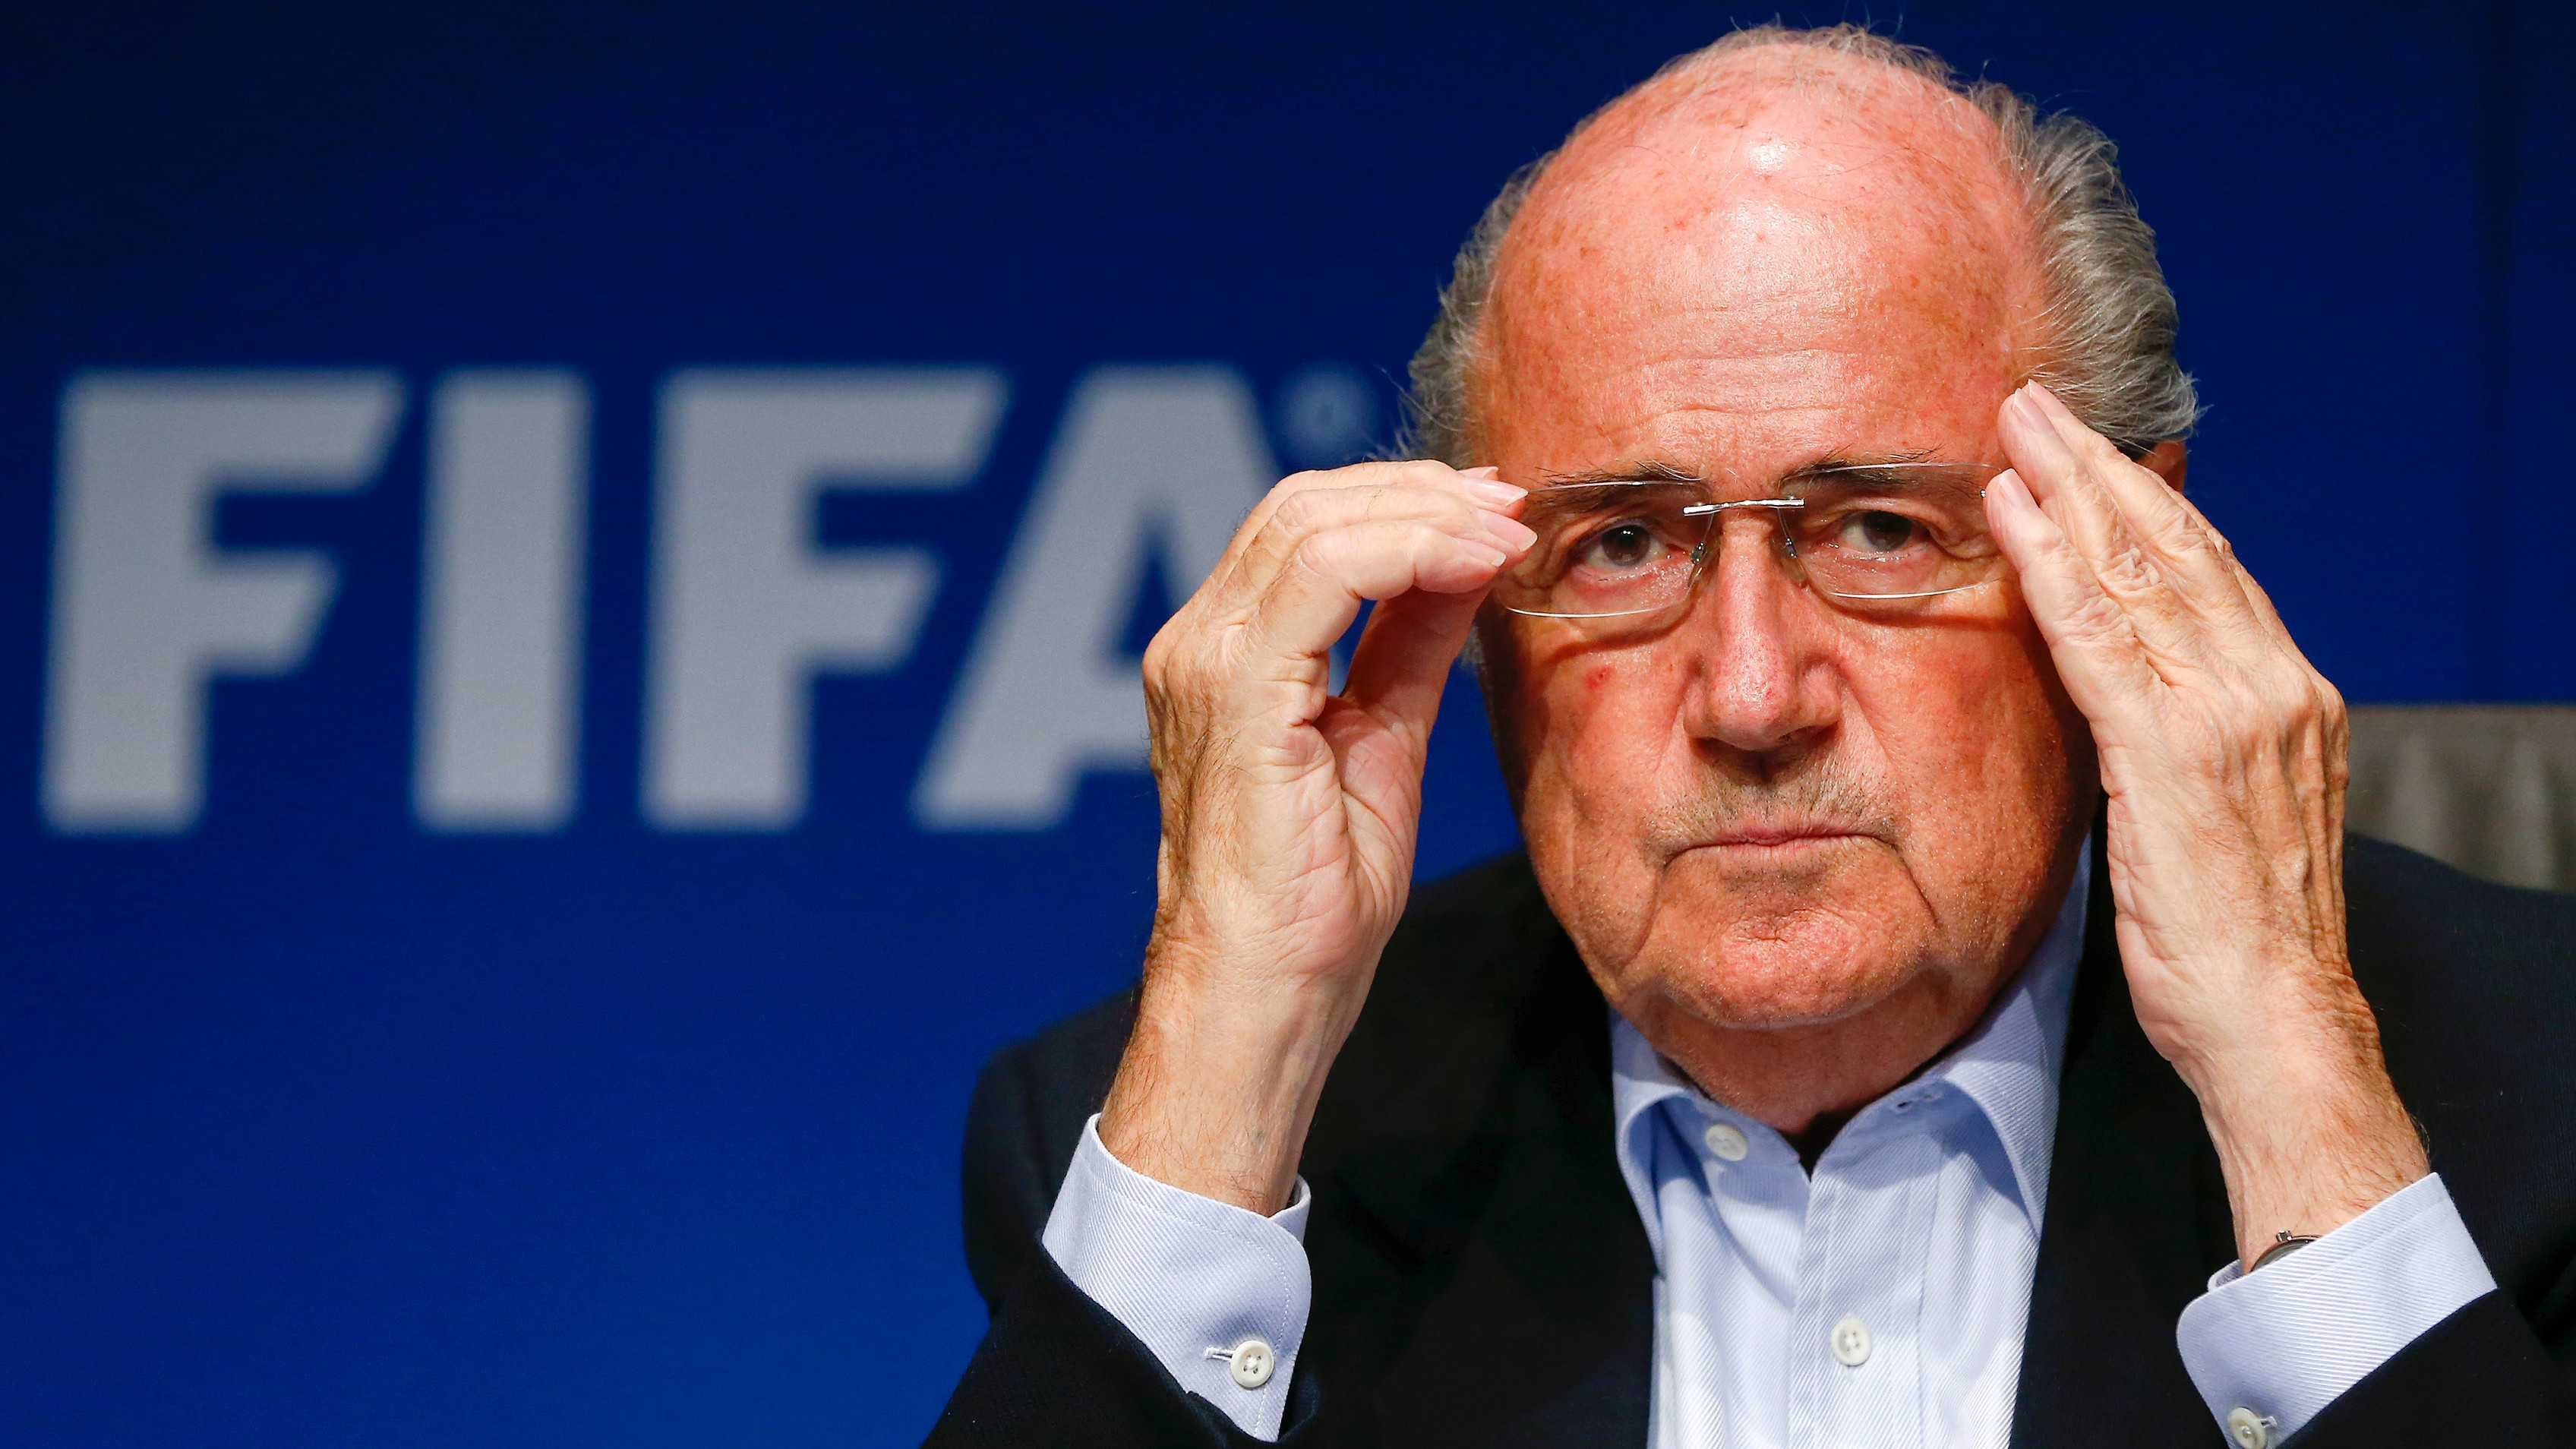 FIFA's Corruption Report Immediately Labeled 'Erroneous' by Its Own Investigator